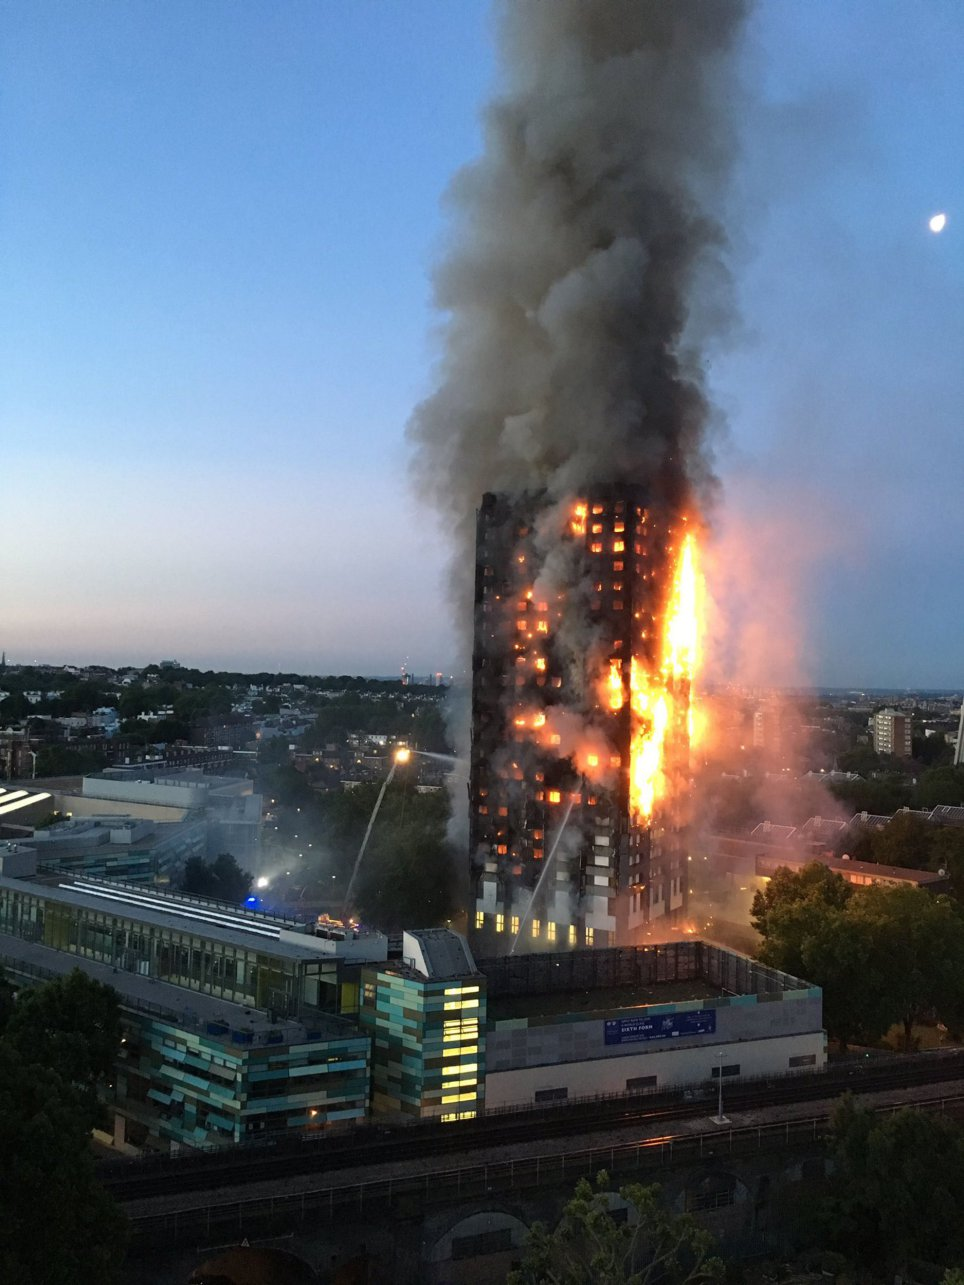 Grenfell Tower fire image via Metro